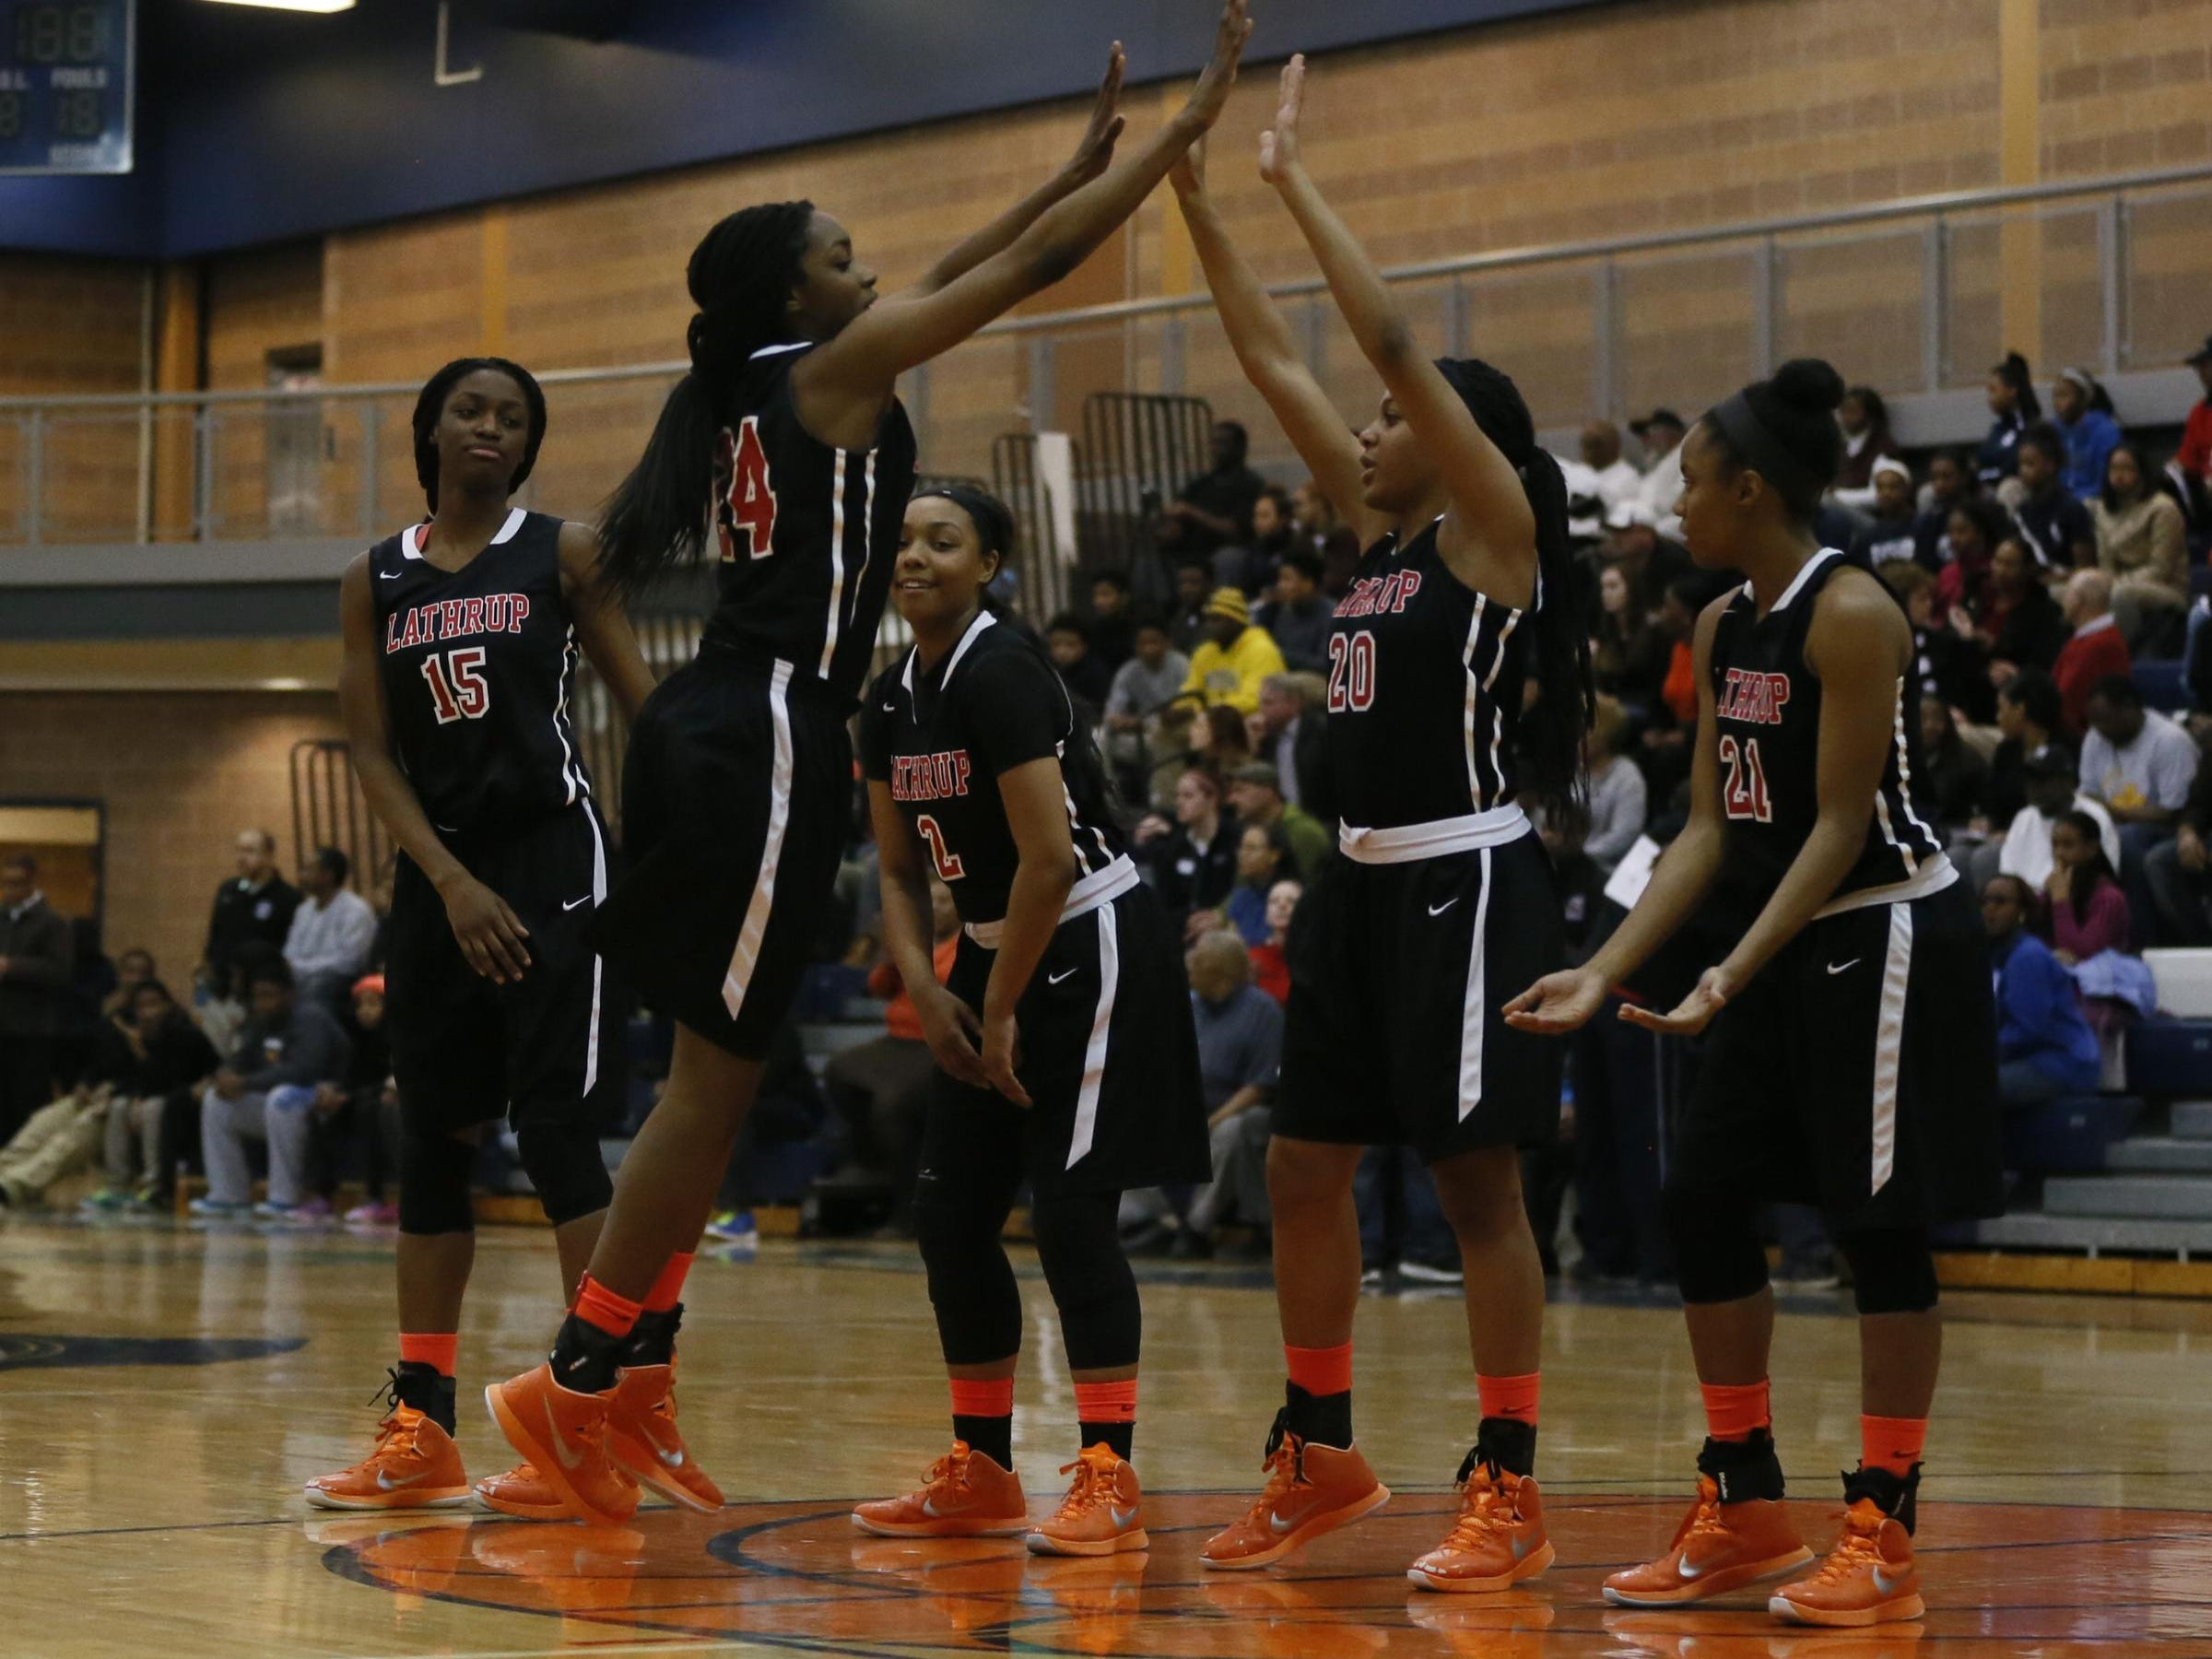 Southfield-Lathrup, led by senior Antoinette Miller and junior Deja Church, can run, jump, defend and kill defenses with its incredible skills.